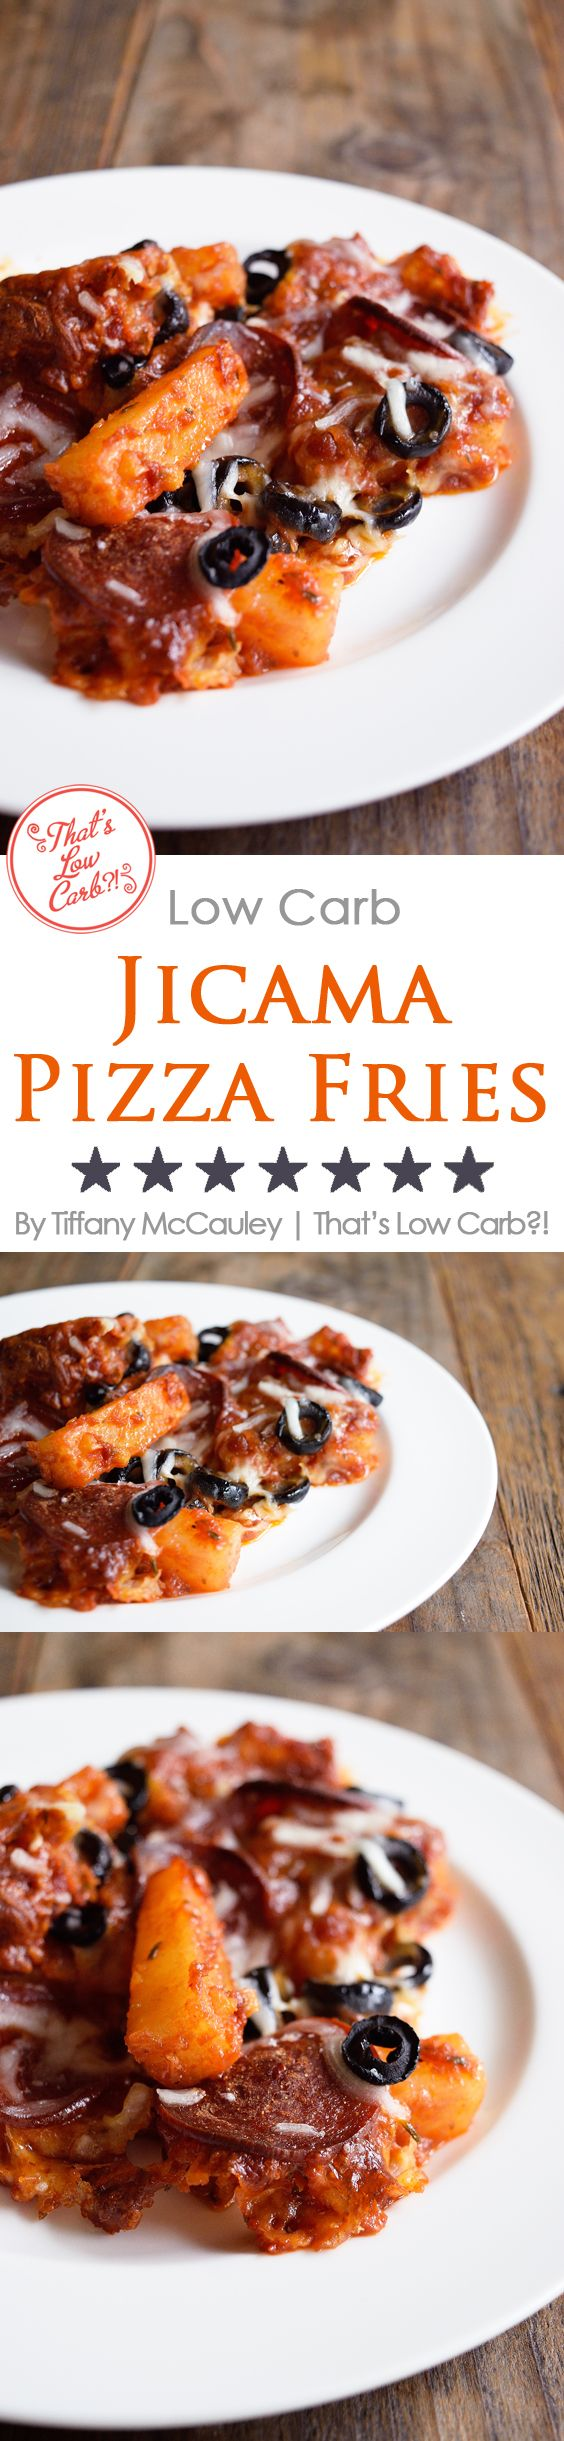 Low Carb Recipes | Pizza Fries | Jicama Fries | Recipes ~ https://www.thatslowcarb.com